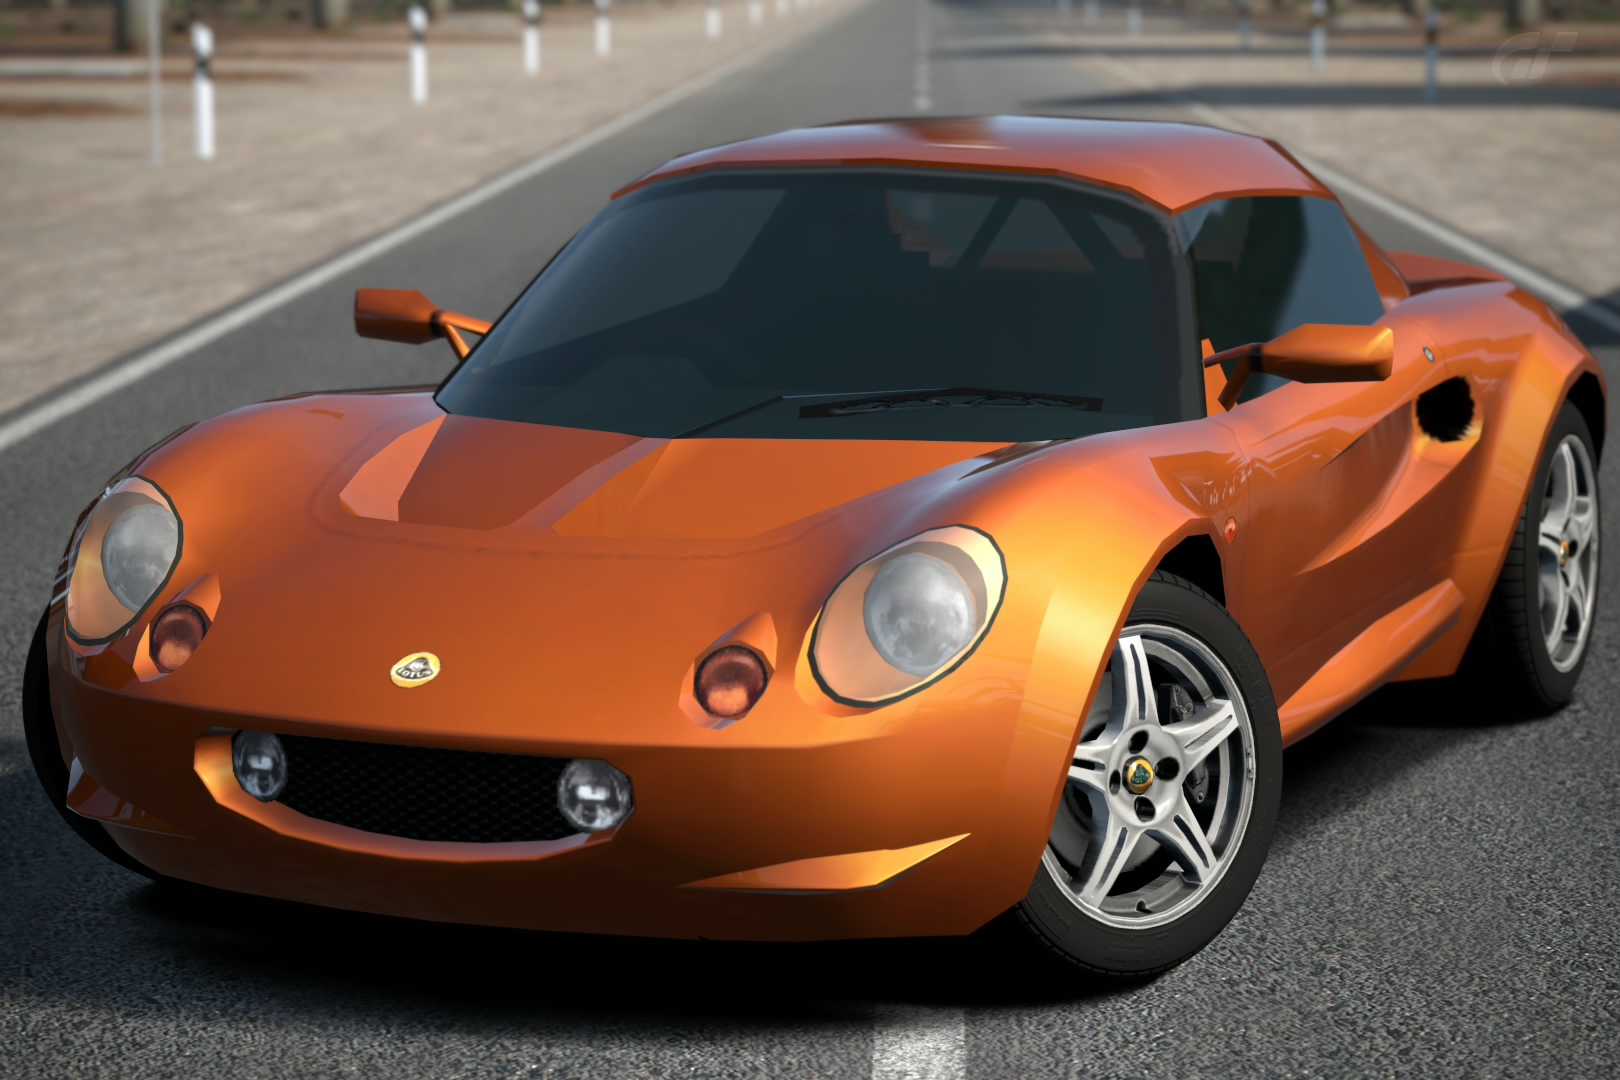 lotus elise sport 190 39 98 gran turismo wiki fandom powered by wikia. Black Bedroom Furniture Sets. Home Design Ideas